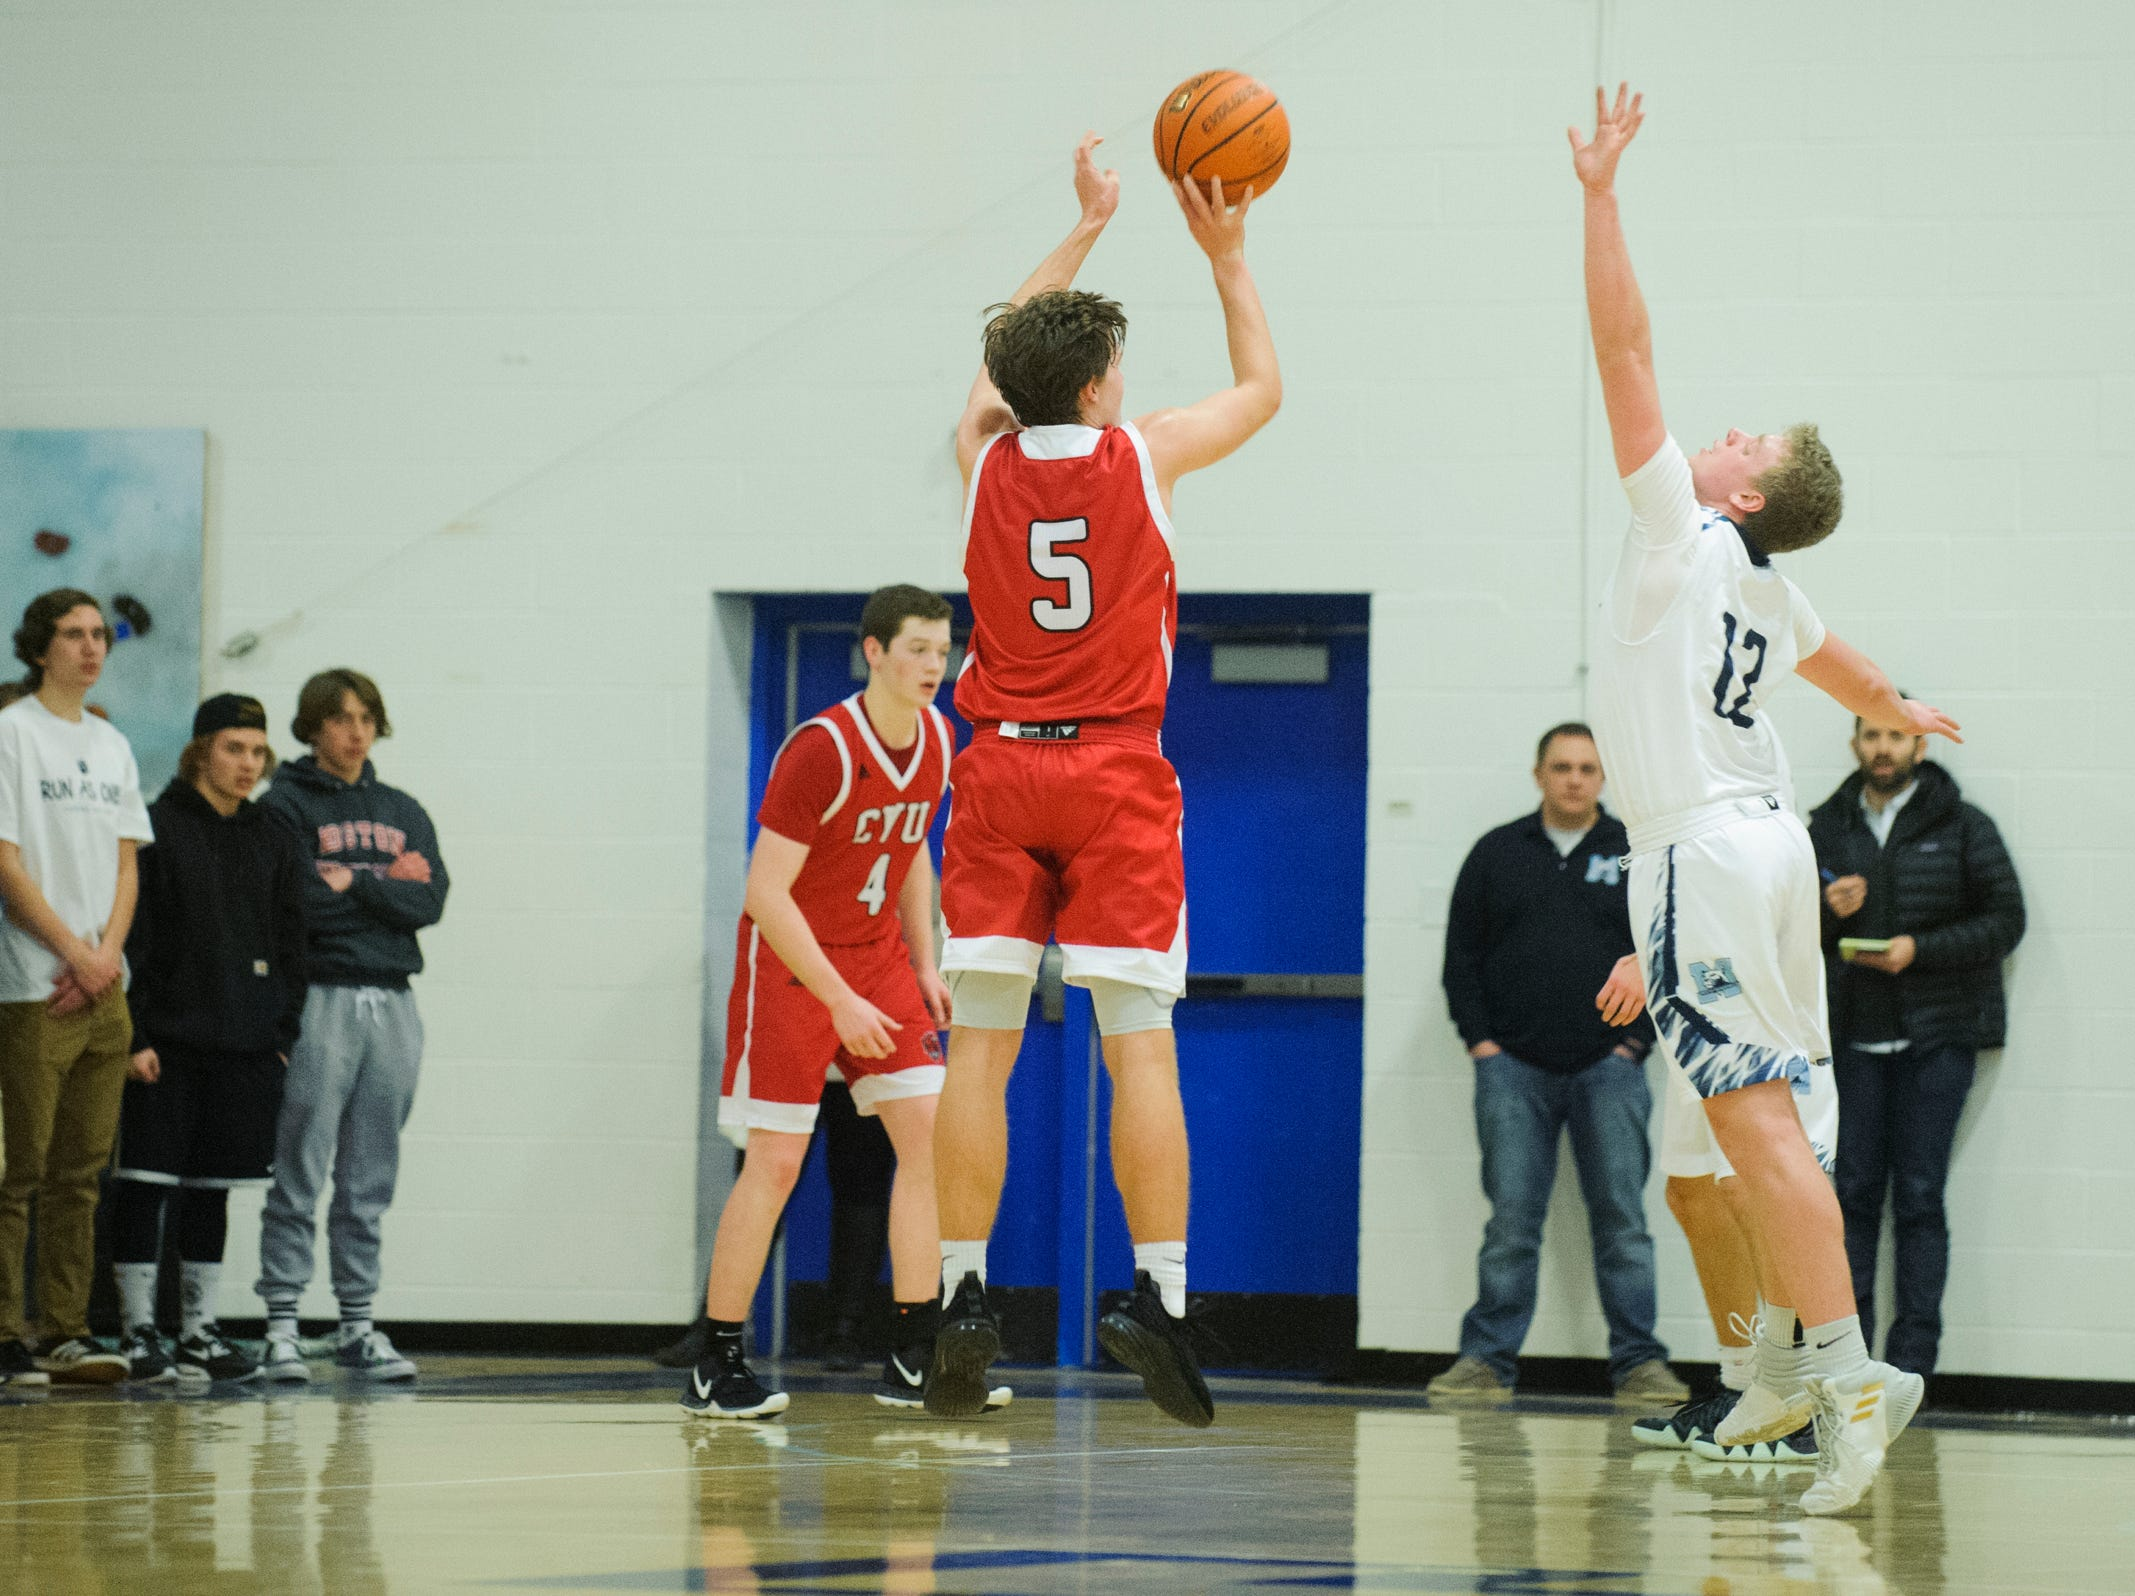 CVU's Ethan Harvey (5) shoots a three pointer over MMU's Asa Carlson (12) during the boys basketball game between the Champlain Valley Union Redhawks and the Mount Mansfield Cougars at MMU High School on Tuesday night January 22, 2019 in Jericho.